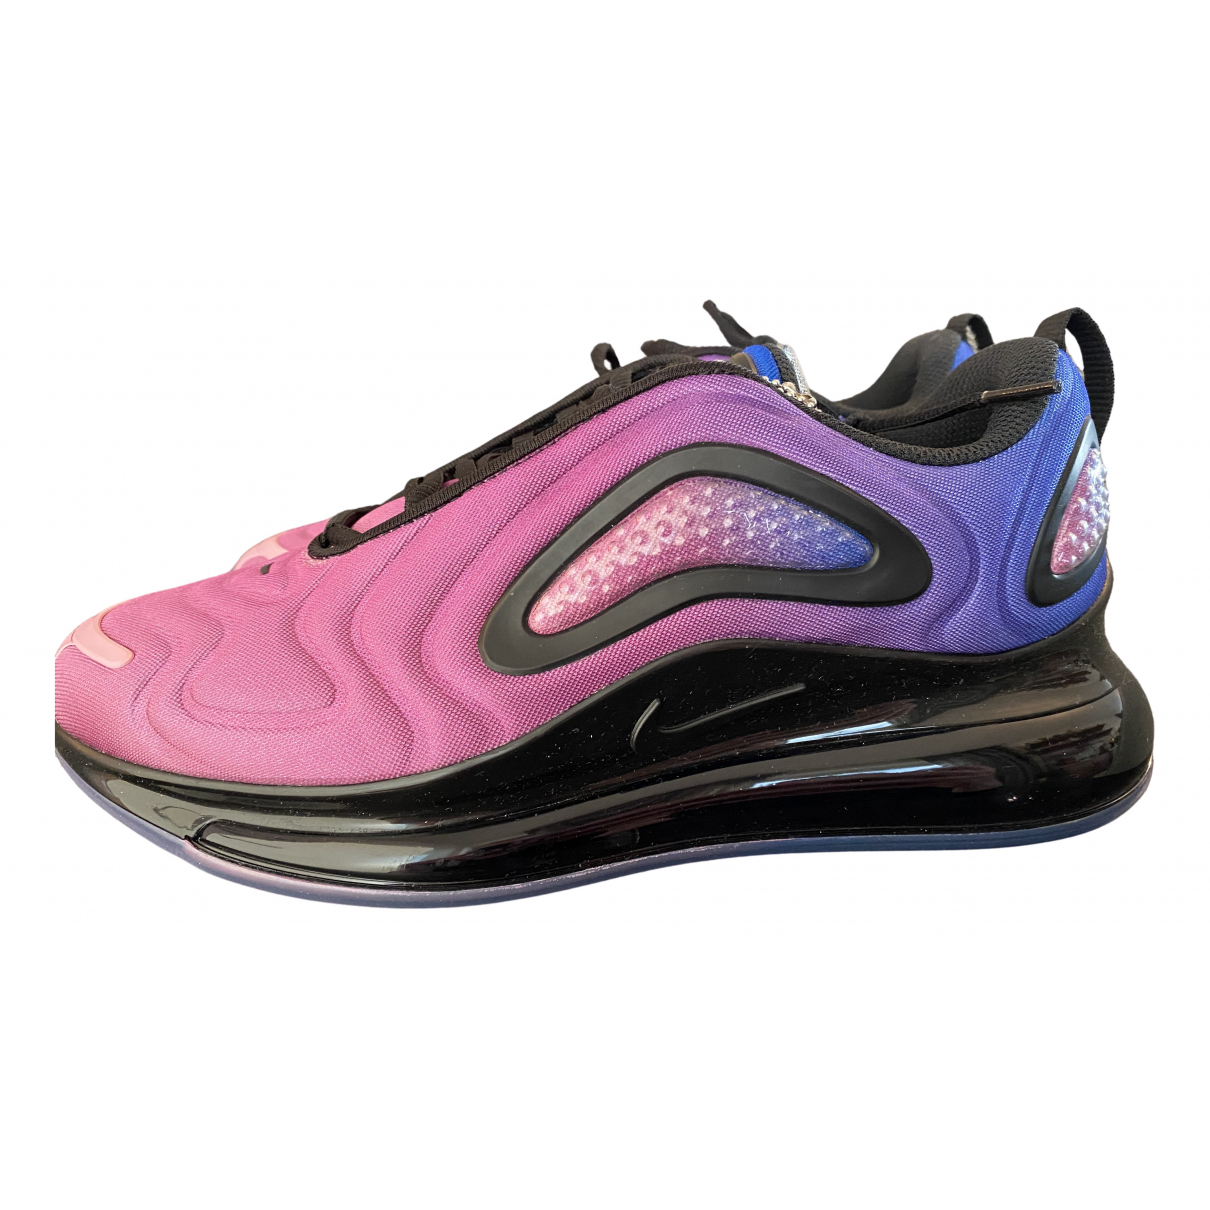 Nike Air Max 720 Pink Trainers for Women 41 EU